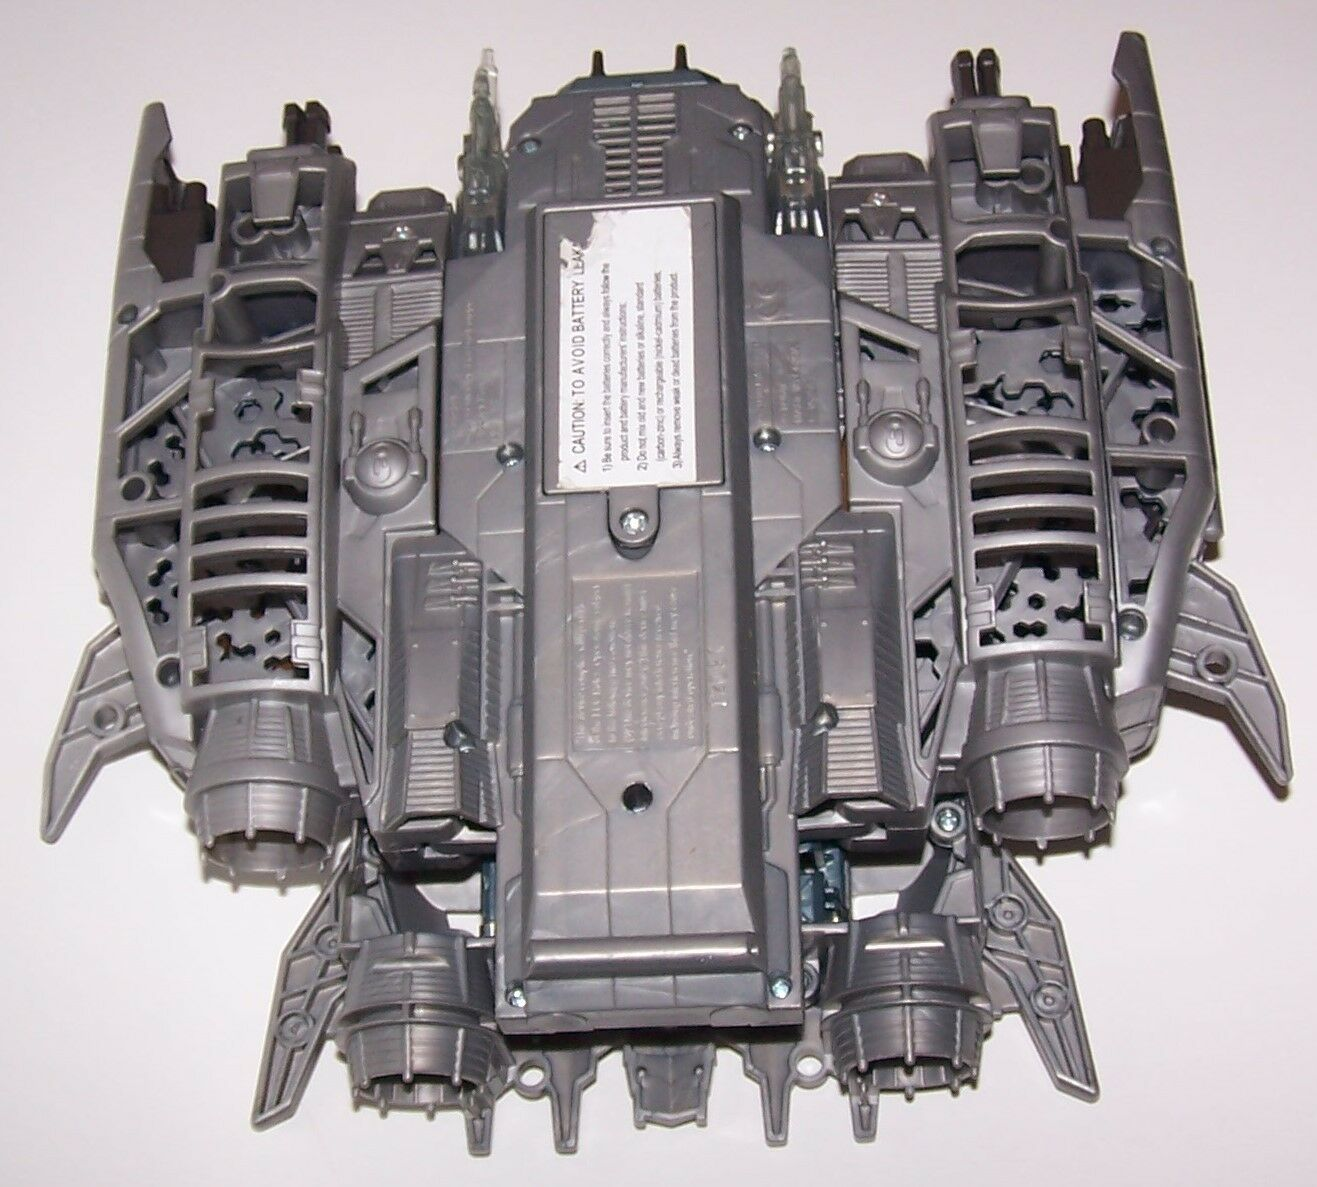 The Transformers Movie DOTM Autobot Cyberverse Playset - Dark Dark Dark of the Moon 6f4b5b